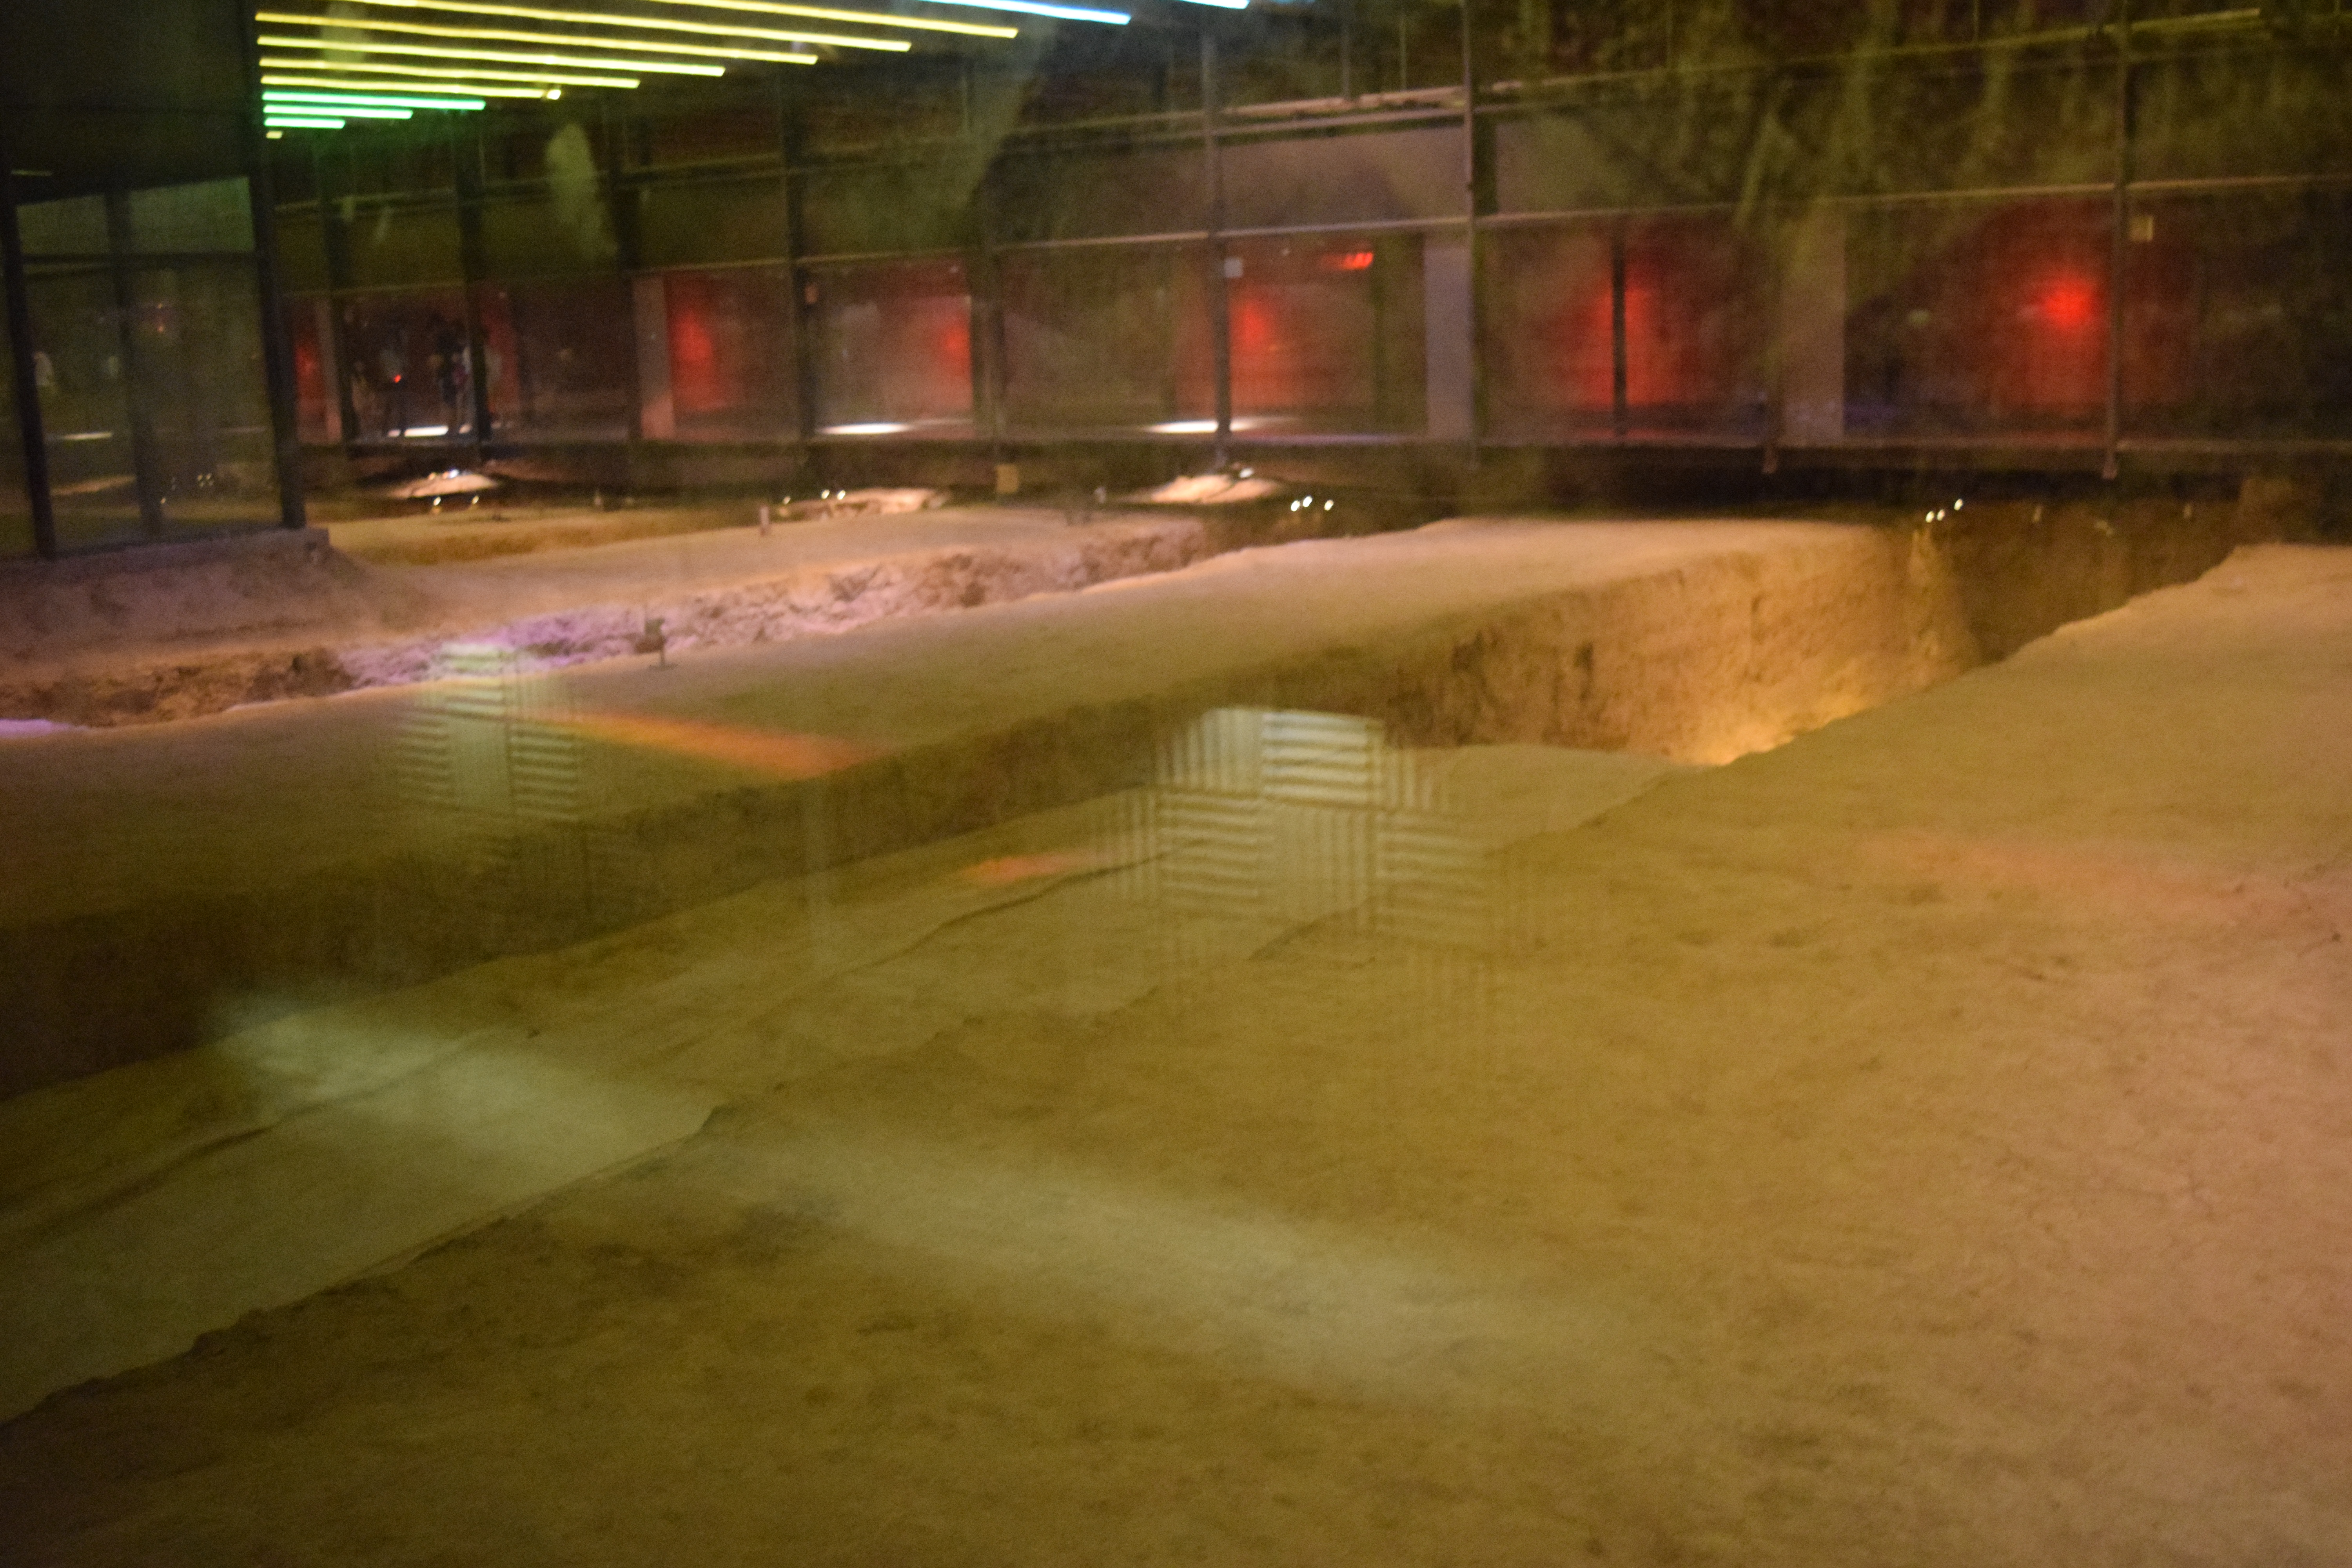 first view of the excavated pit in the glass panelled underground museum which was opened in 2007